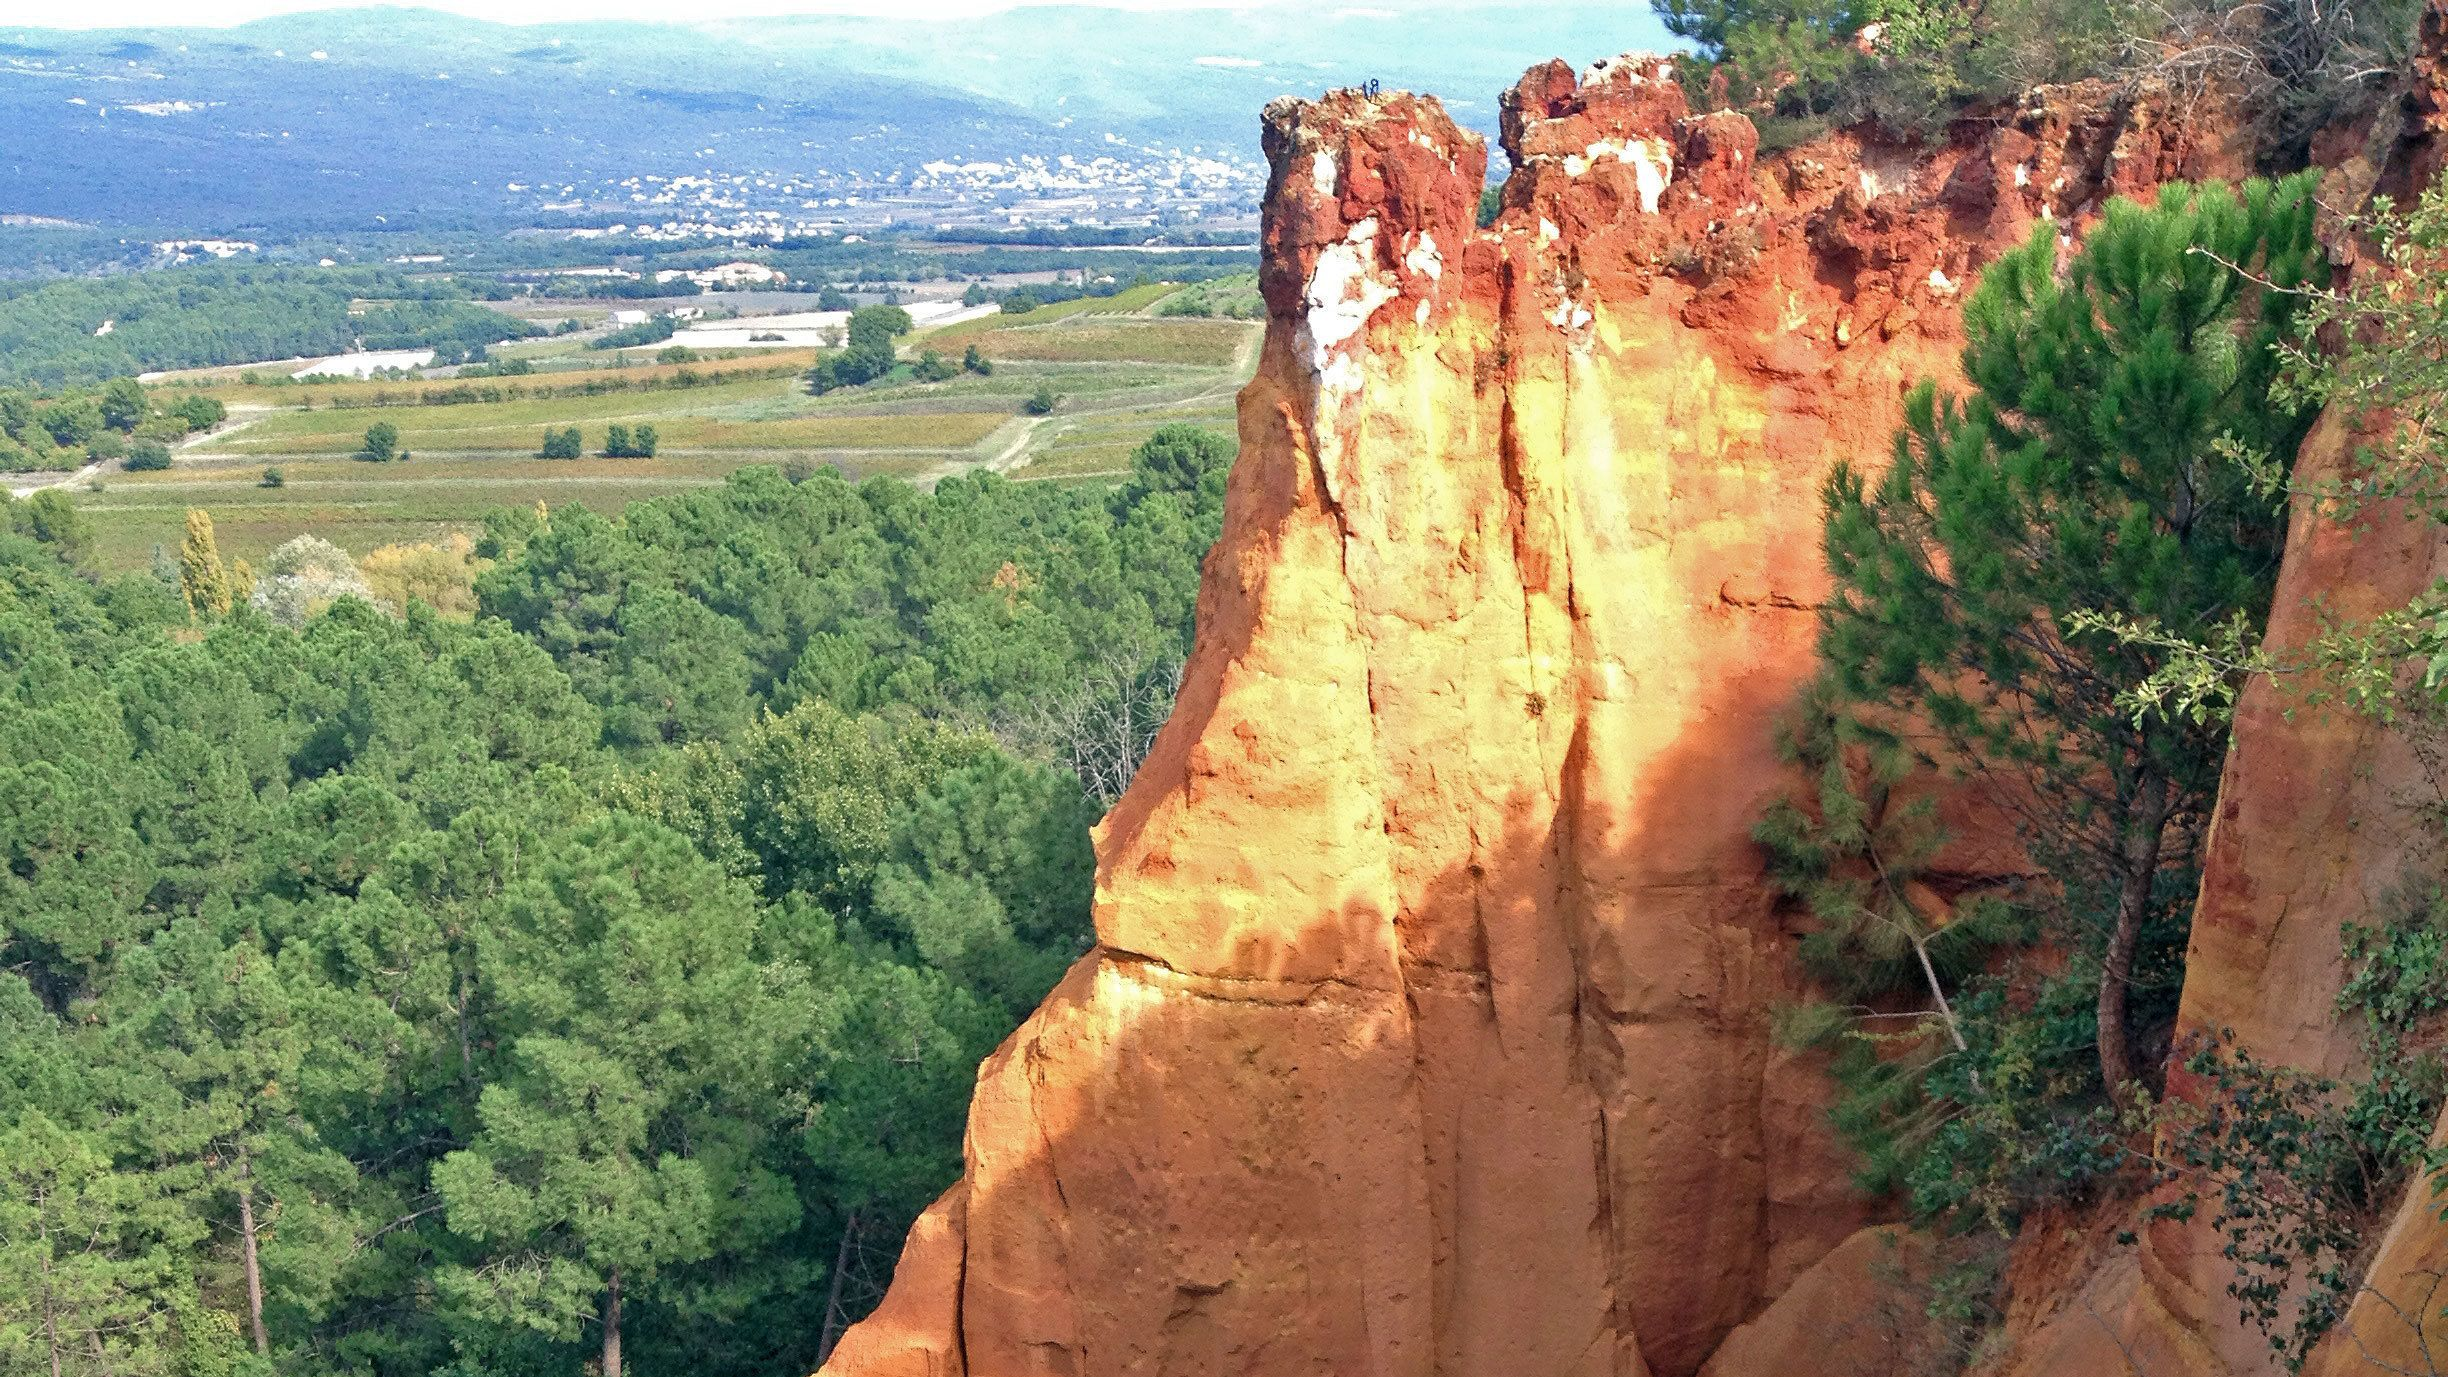 Red cliffs near the city of Roussillon